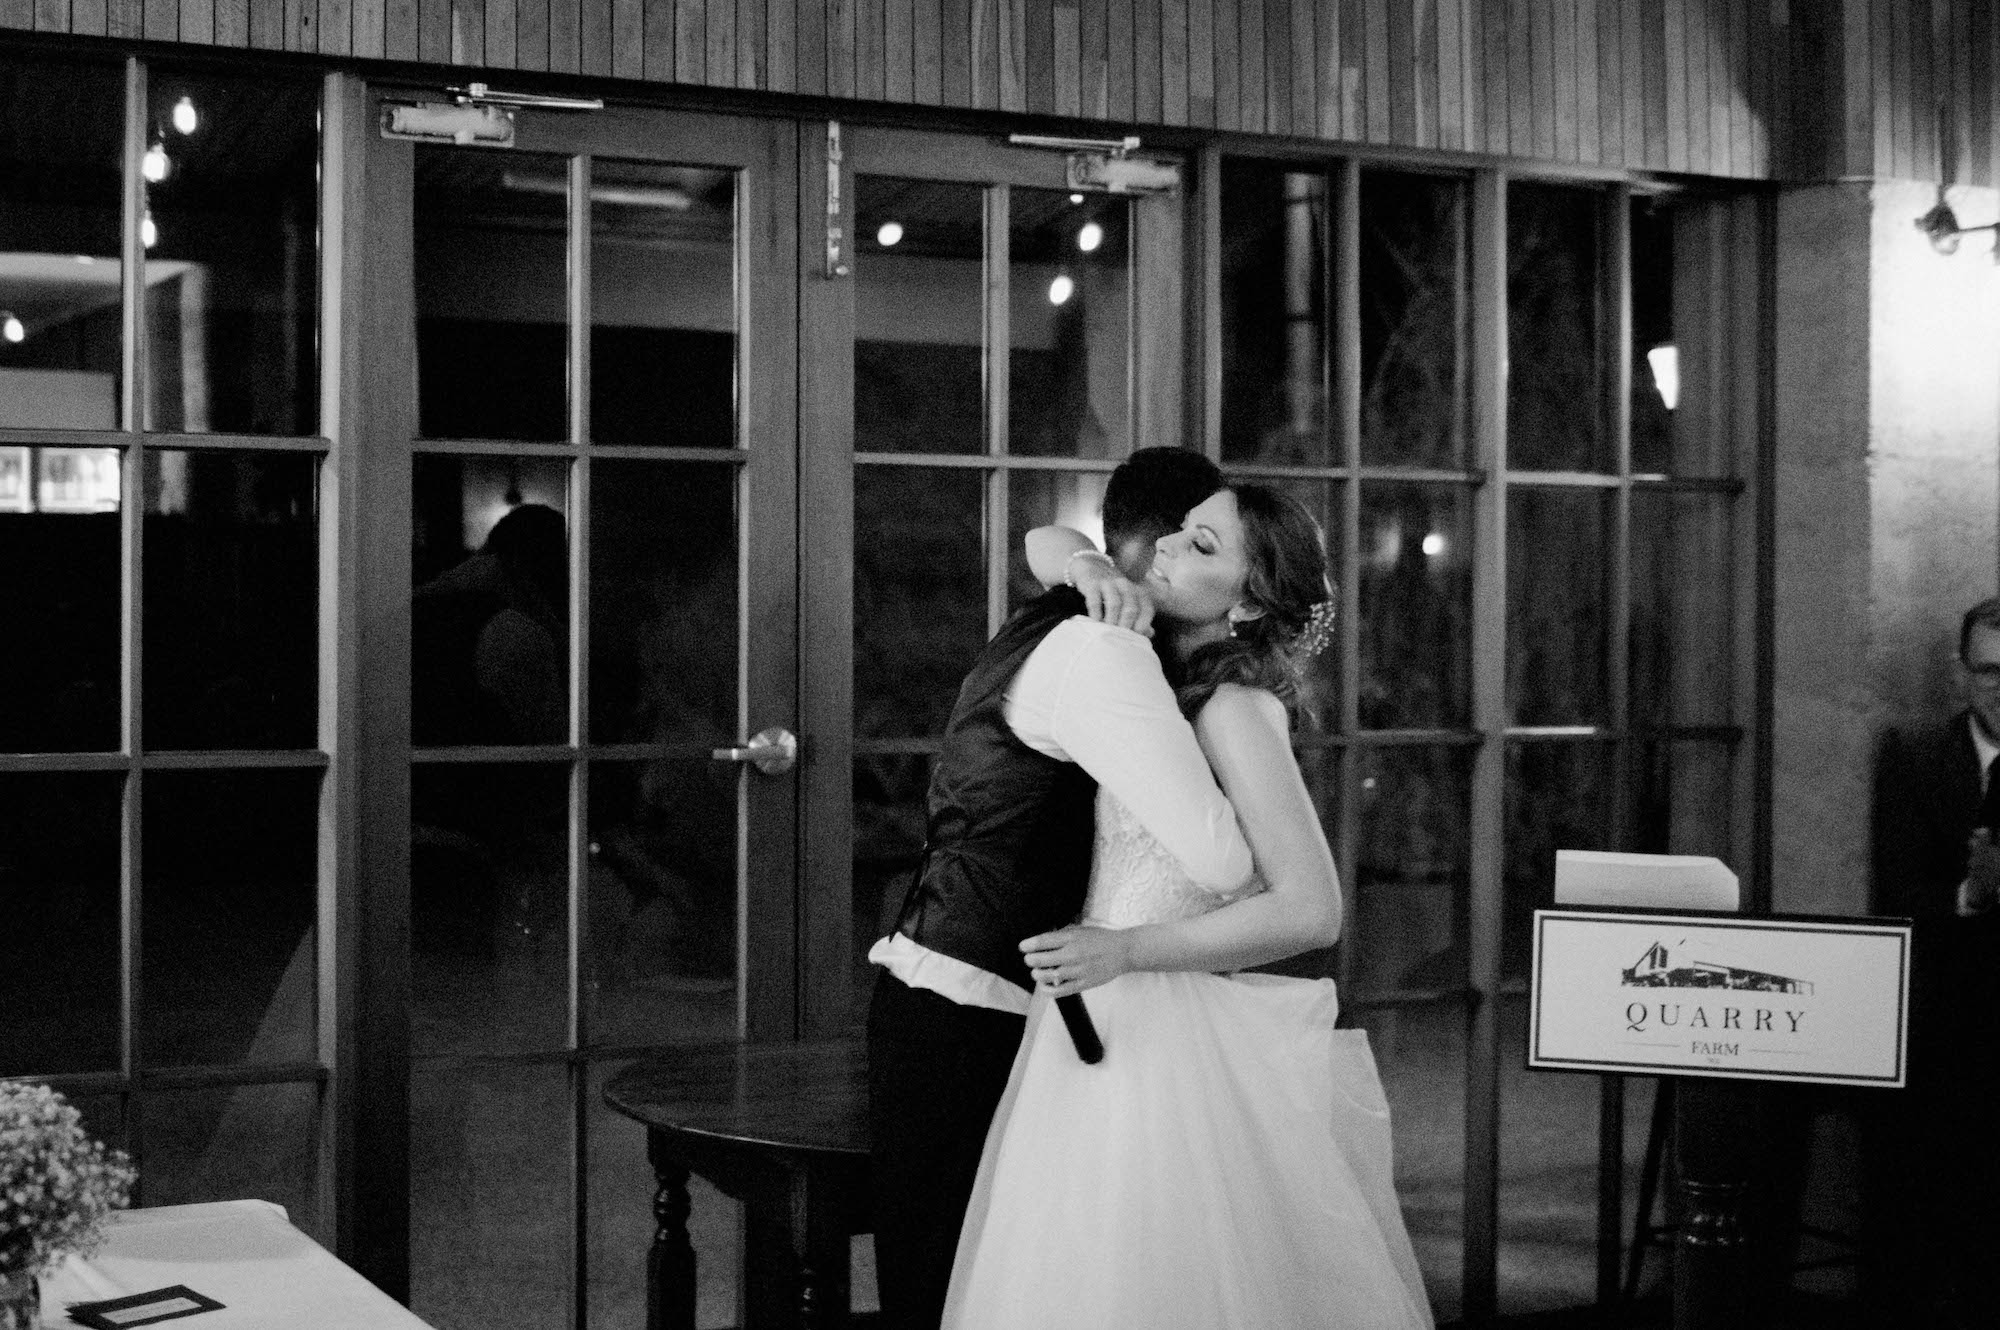 A black & white wedding photo of the bride & groom hugging after their speeches.